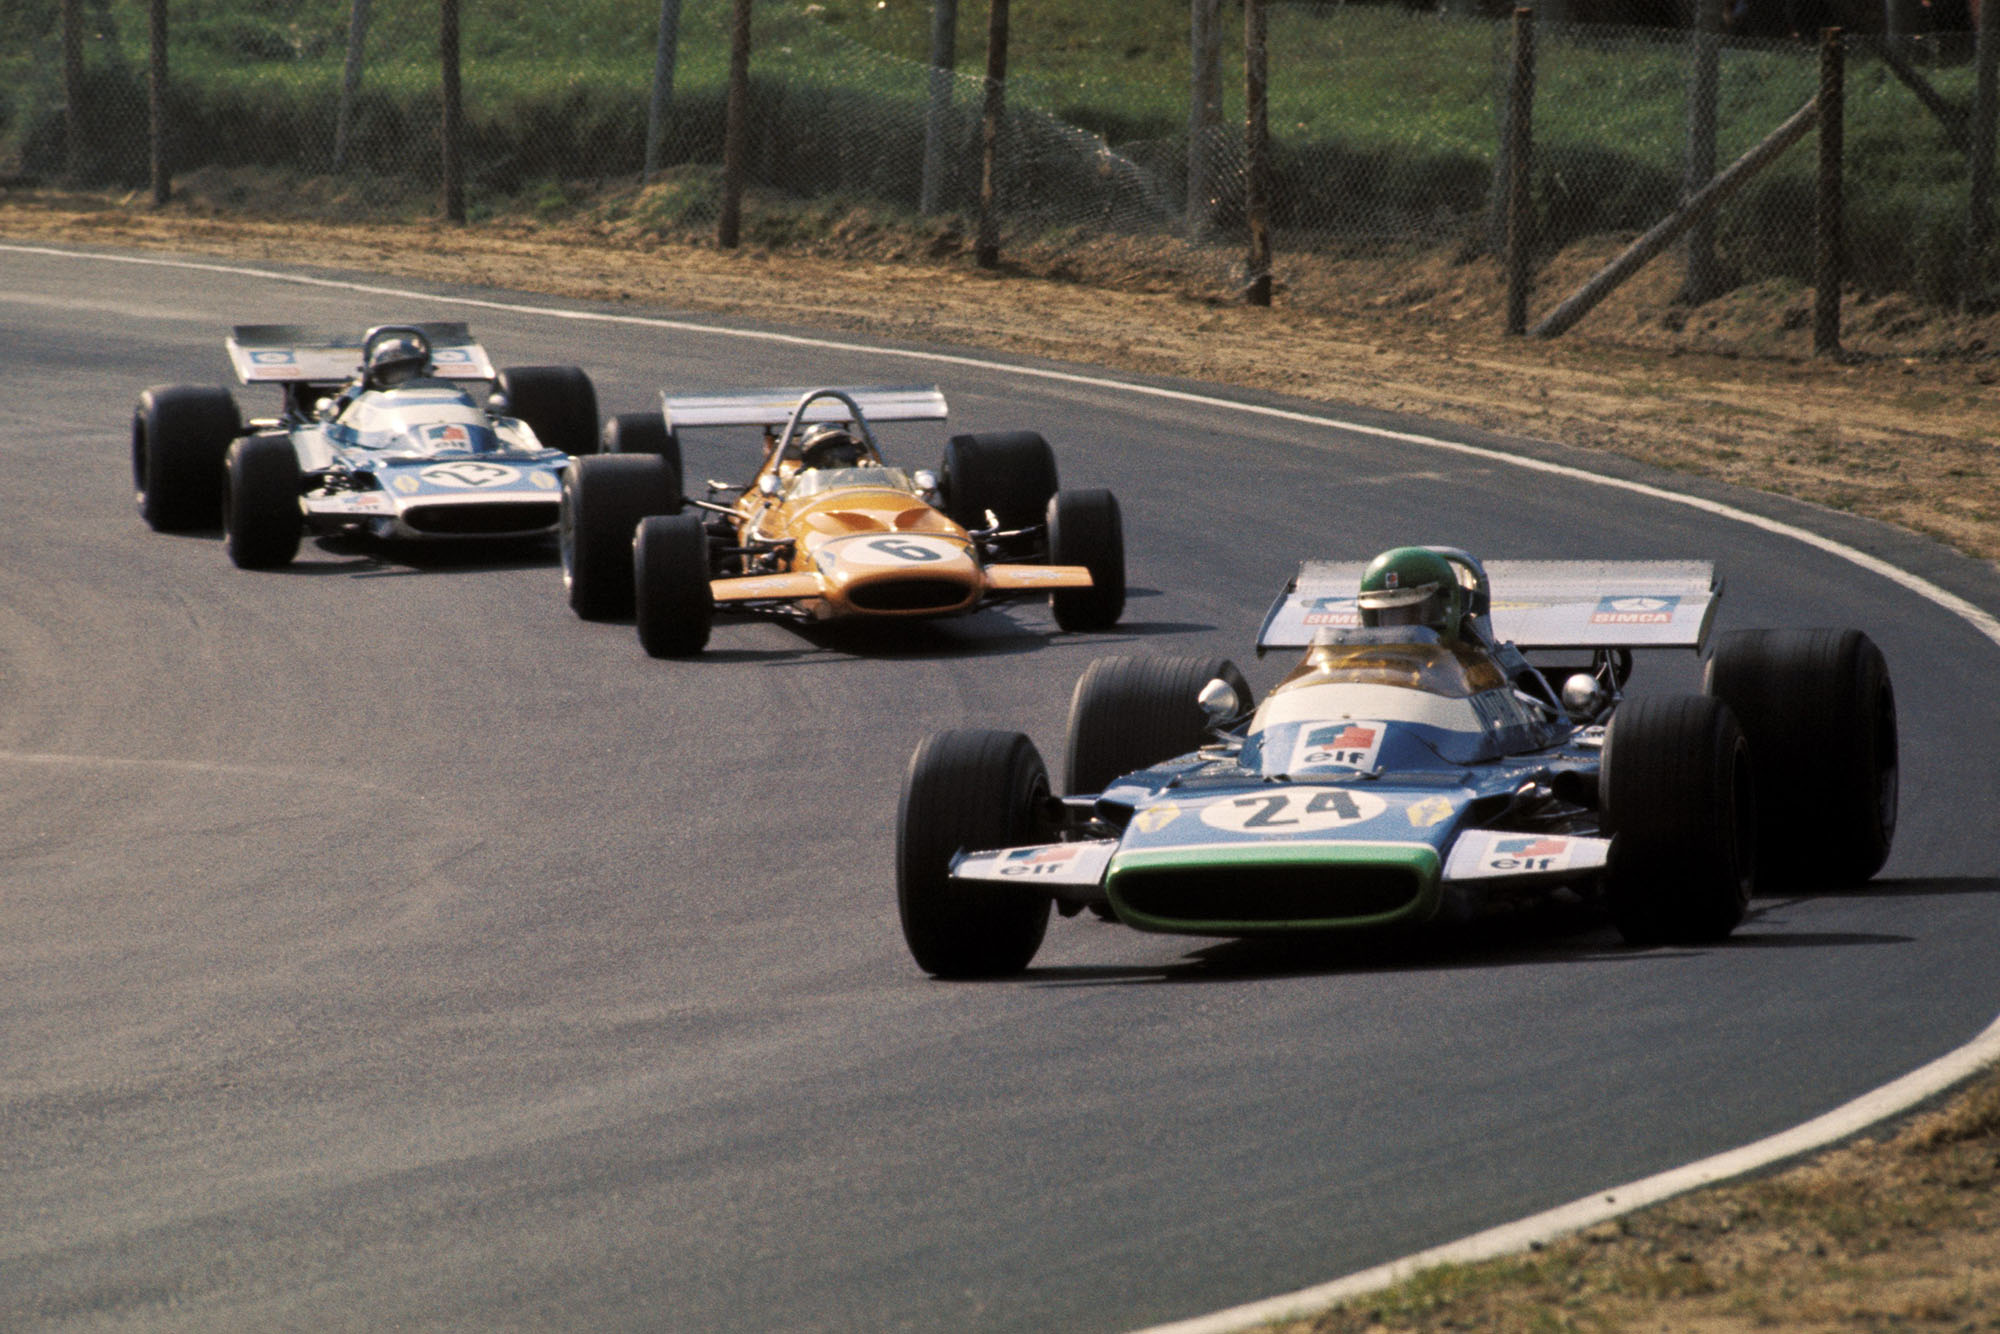 Henri Pescarolo leads the midfield pack in his Matra at the 1970 Canadian Grand Prix.